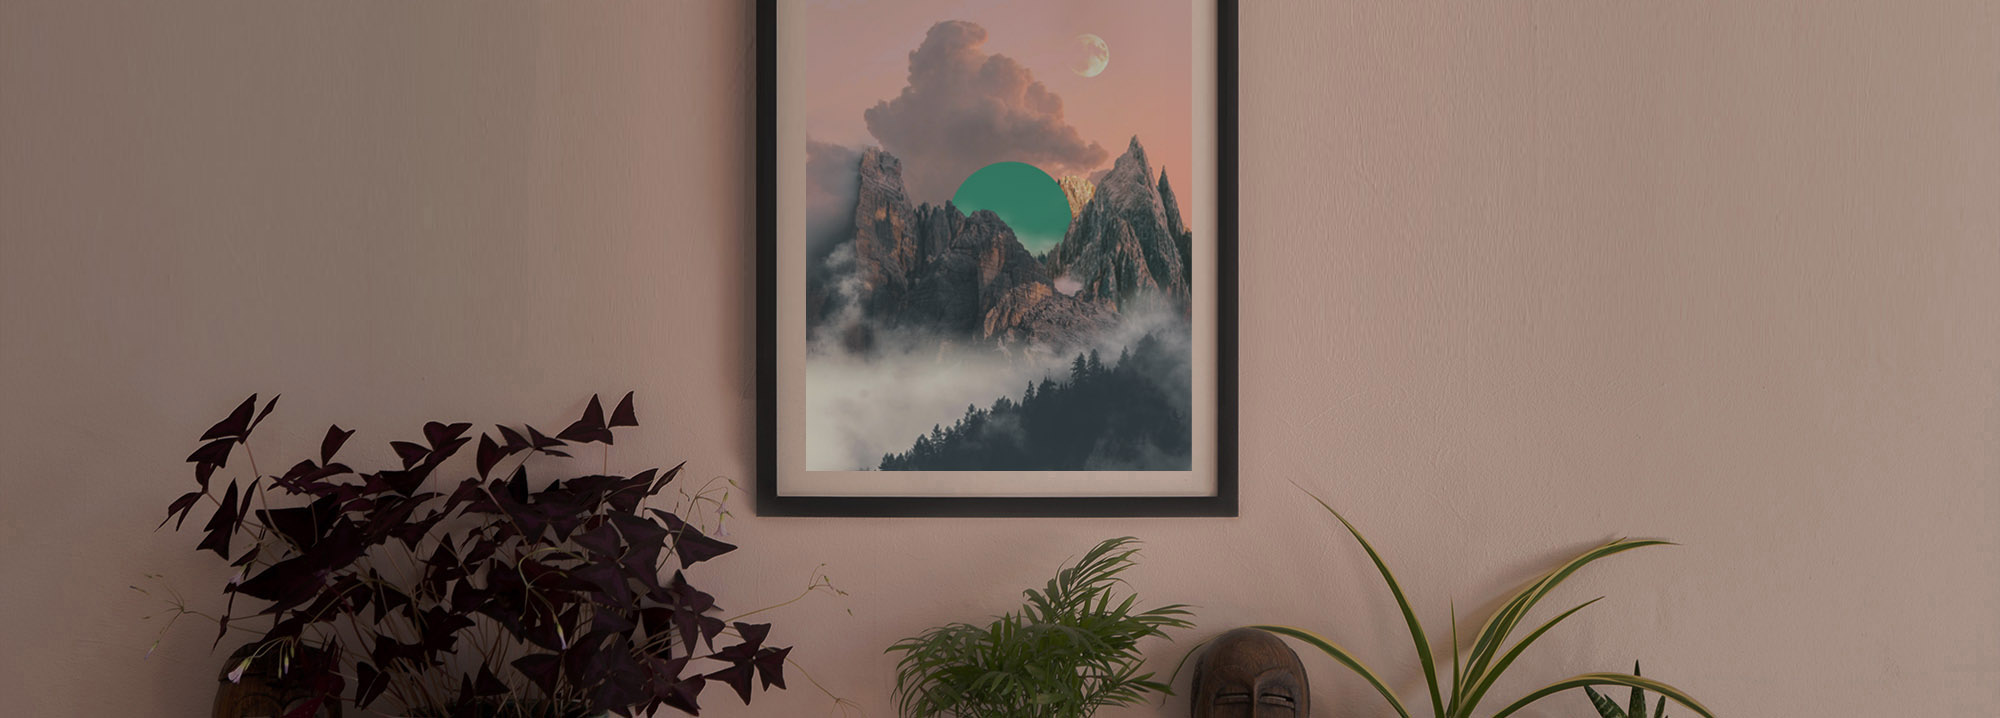 Fine Art Prints by Marc-Aurèle Palla